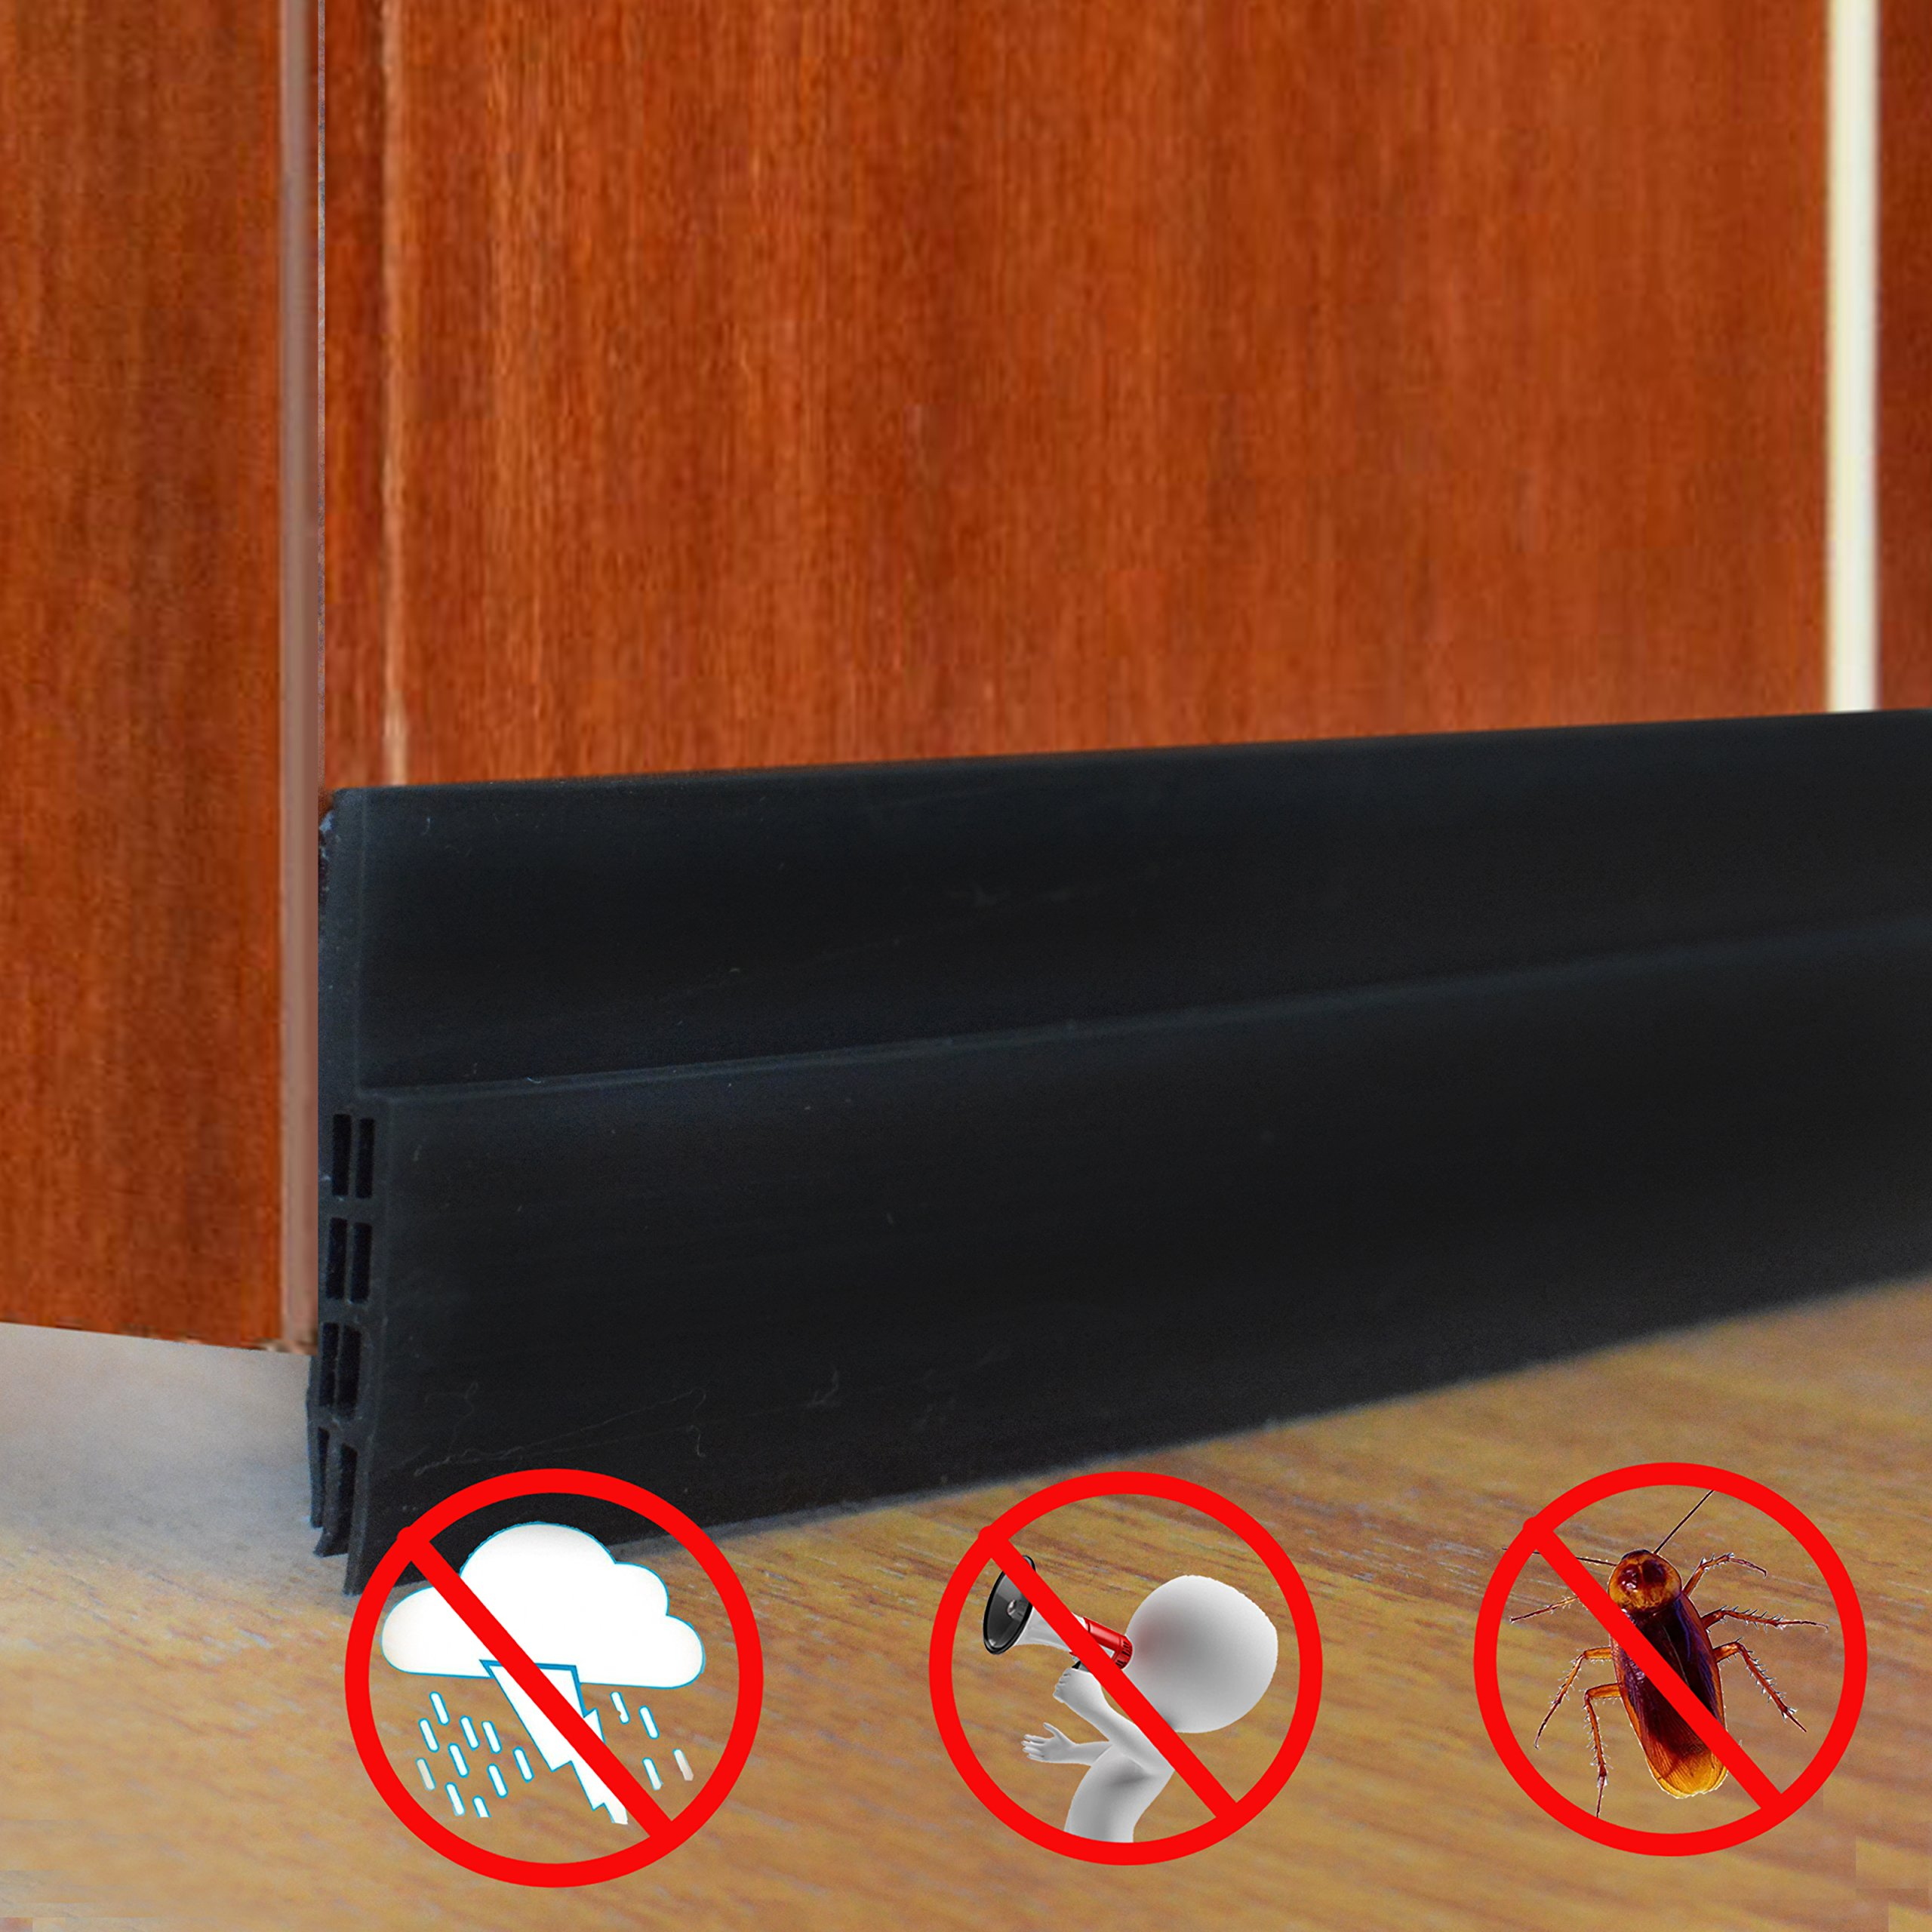 Under Door Sweep Weather Stripping Soundproof door Draft Stopper Direct Energy Saver for Door Bottom Seal, 1.6'' Width×39'' Length